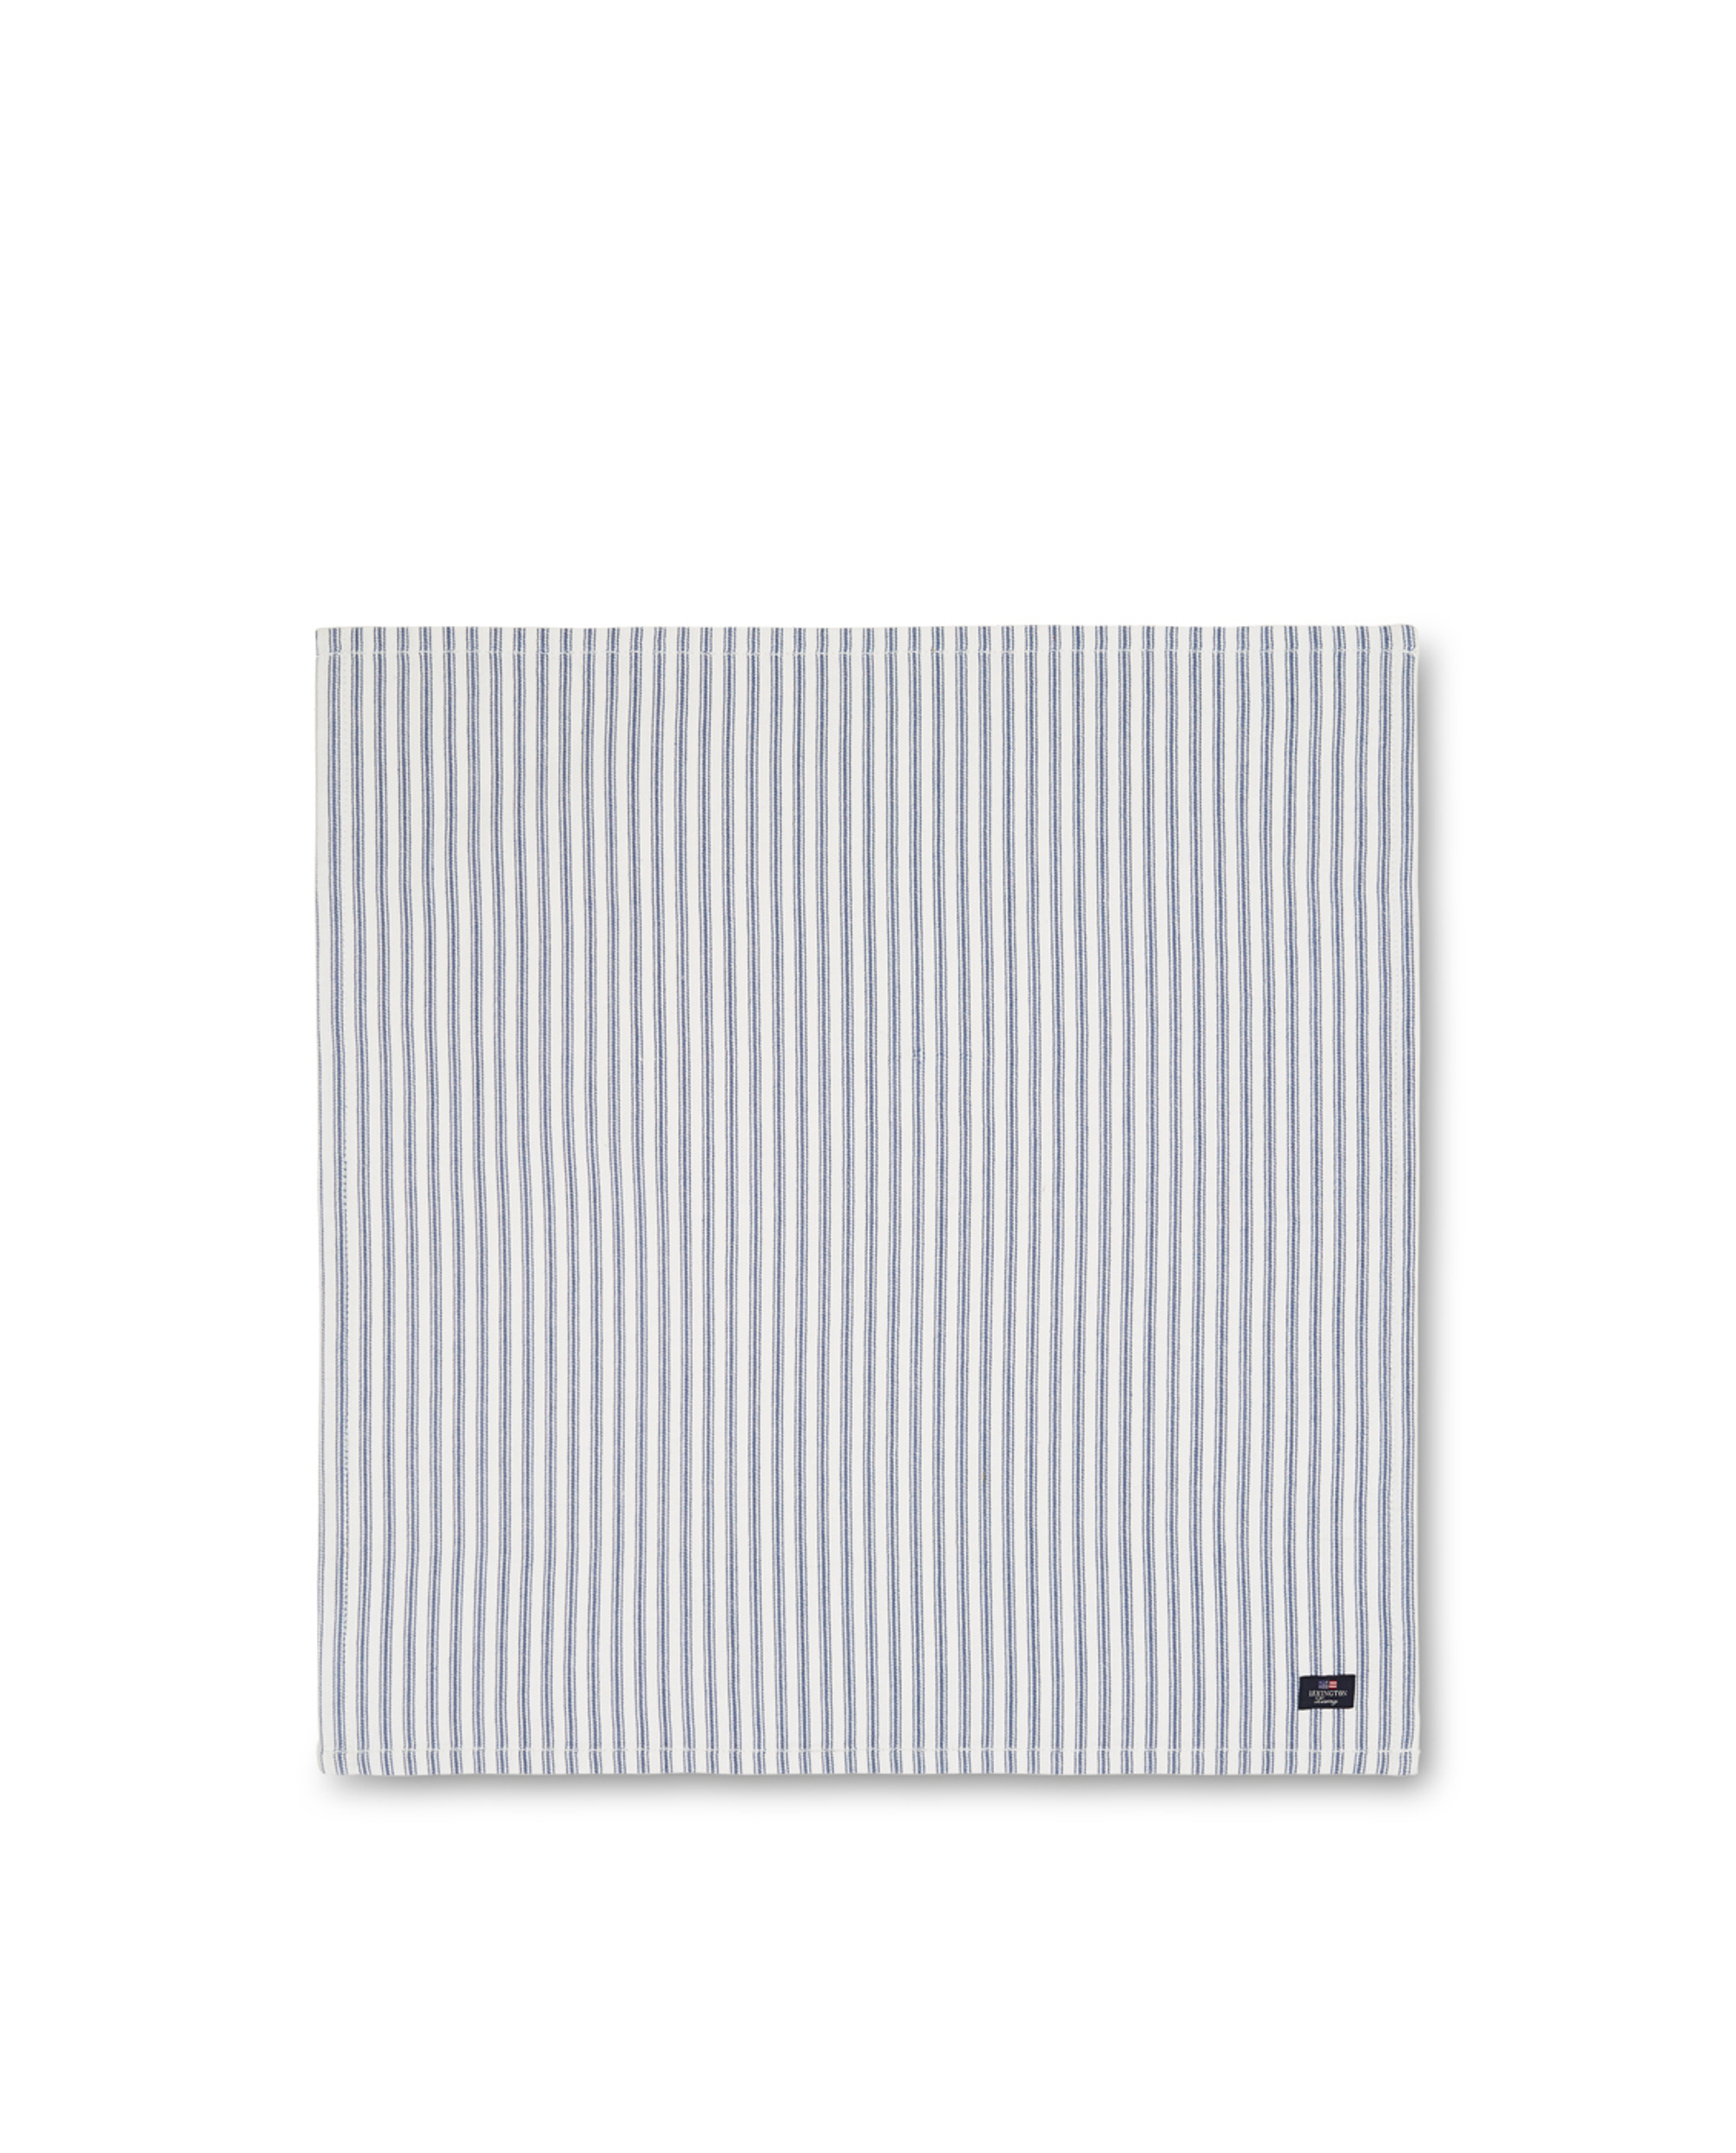 Icons Cotton Herringbone Striped Napkin, Blue/White